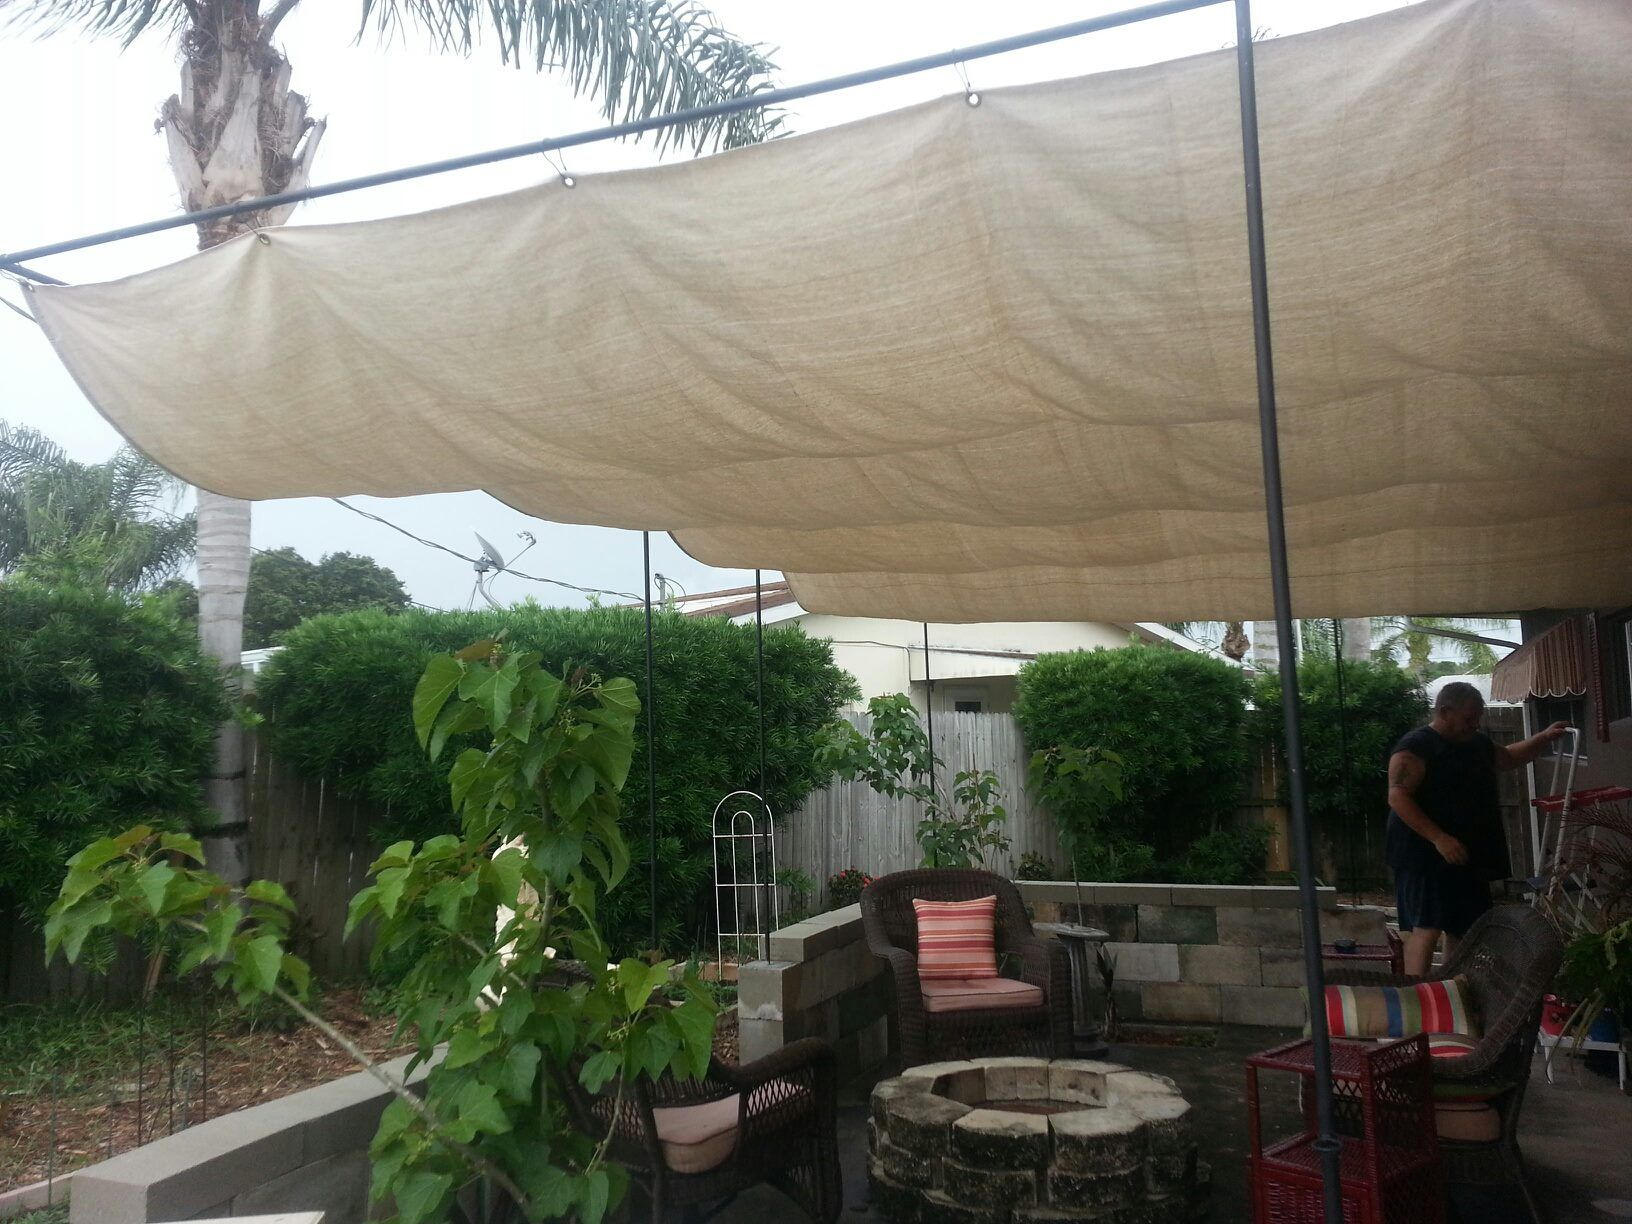 23 Ft X 12 Ft Canopy Cover Made With Painters Canvas Tarp And Grommets Put Up With Metal Shower Curtain Rings Total Co Canopy Outdoor Backyard Canopy Backyard